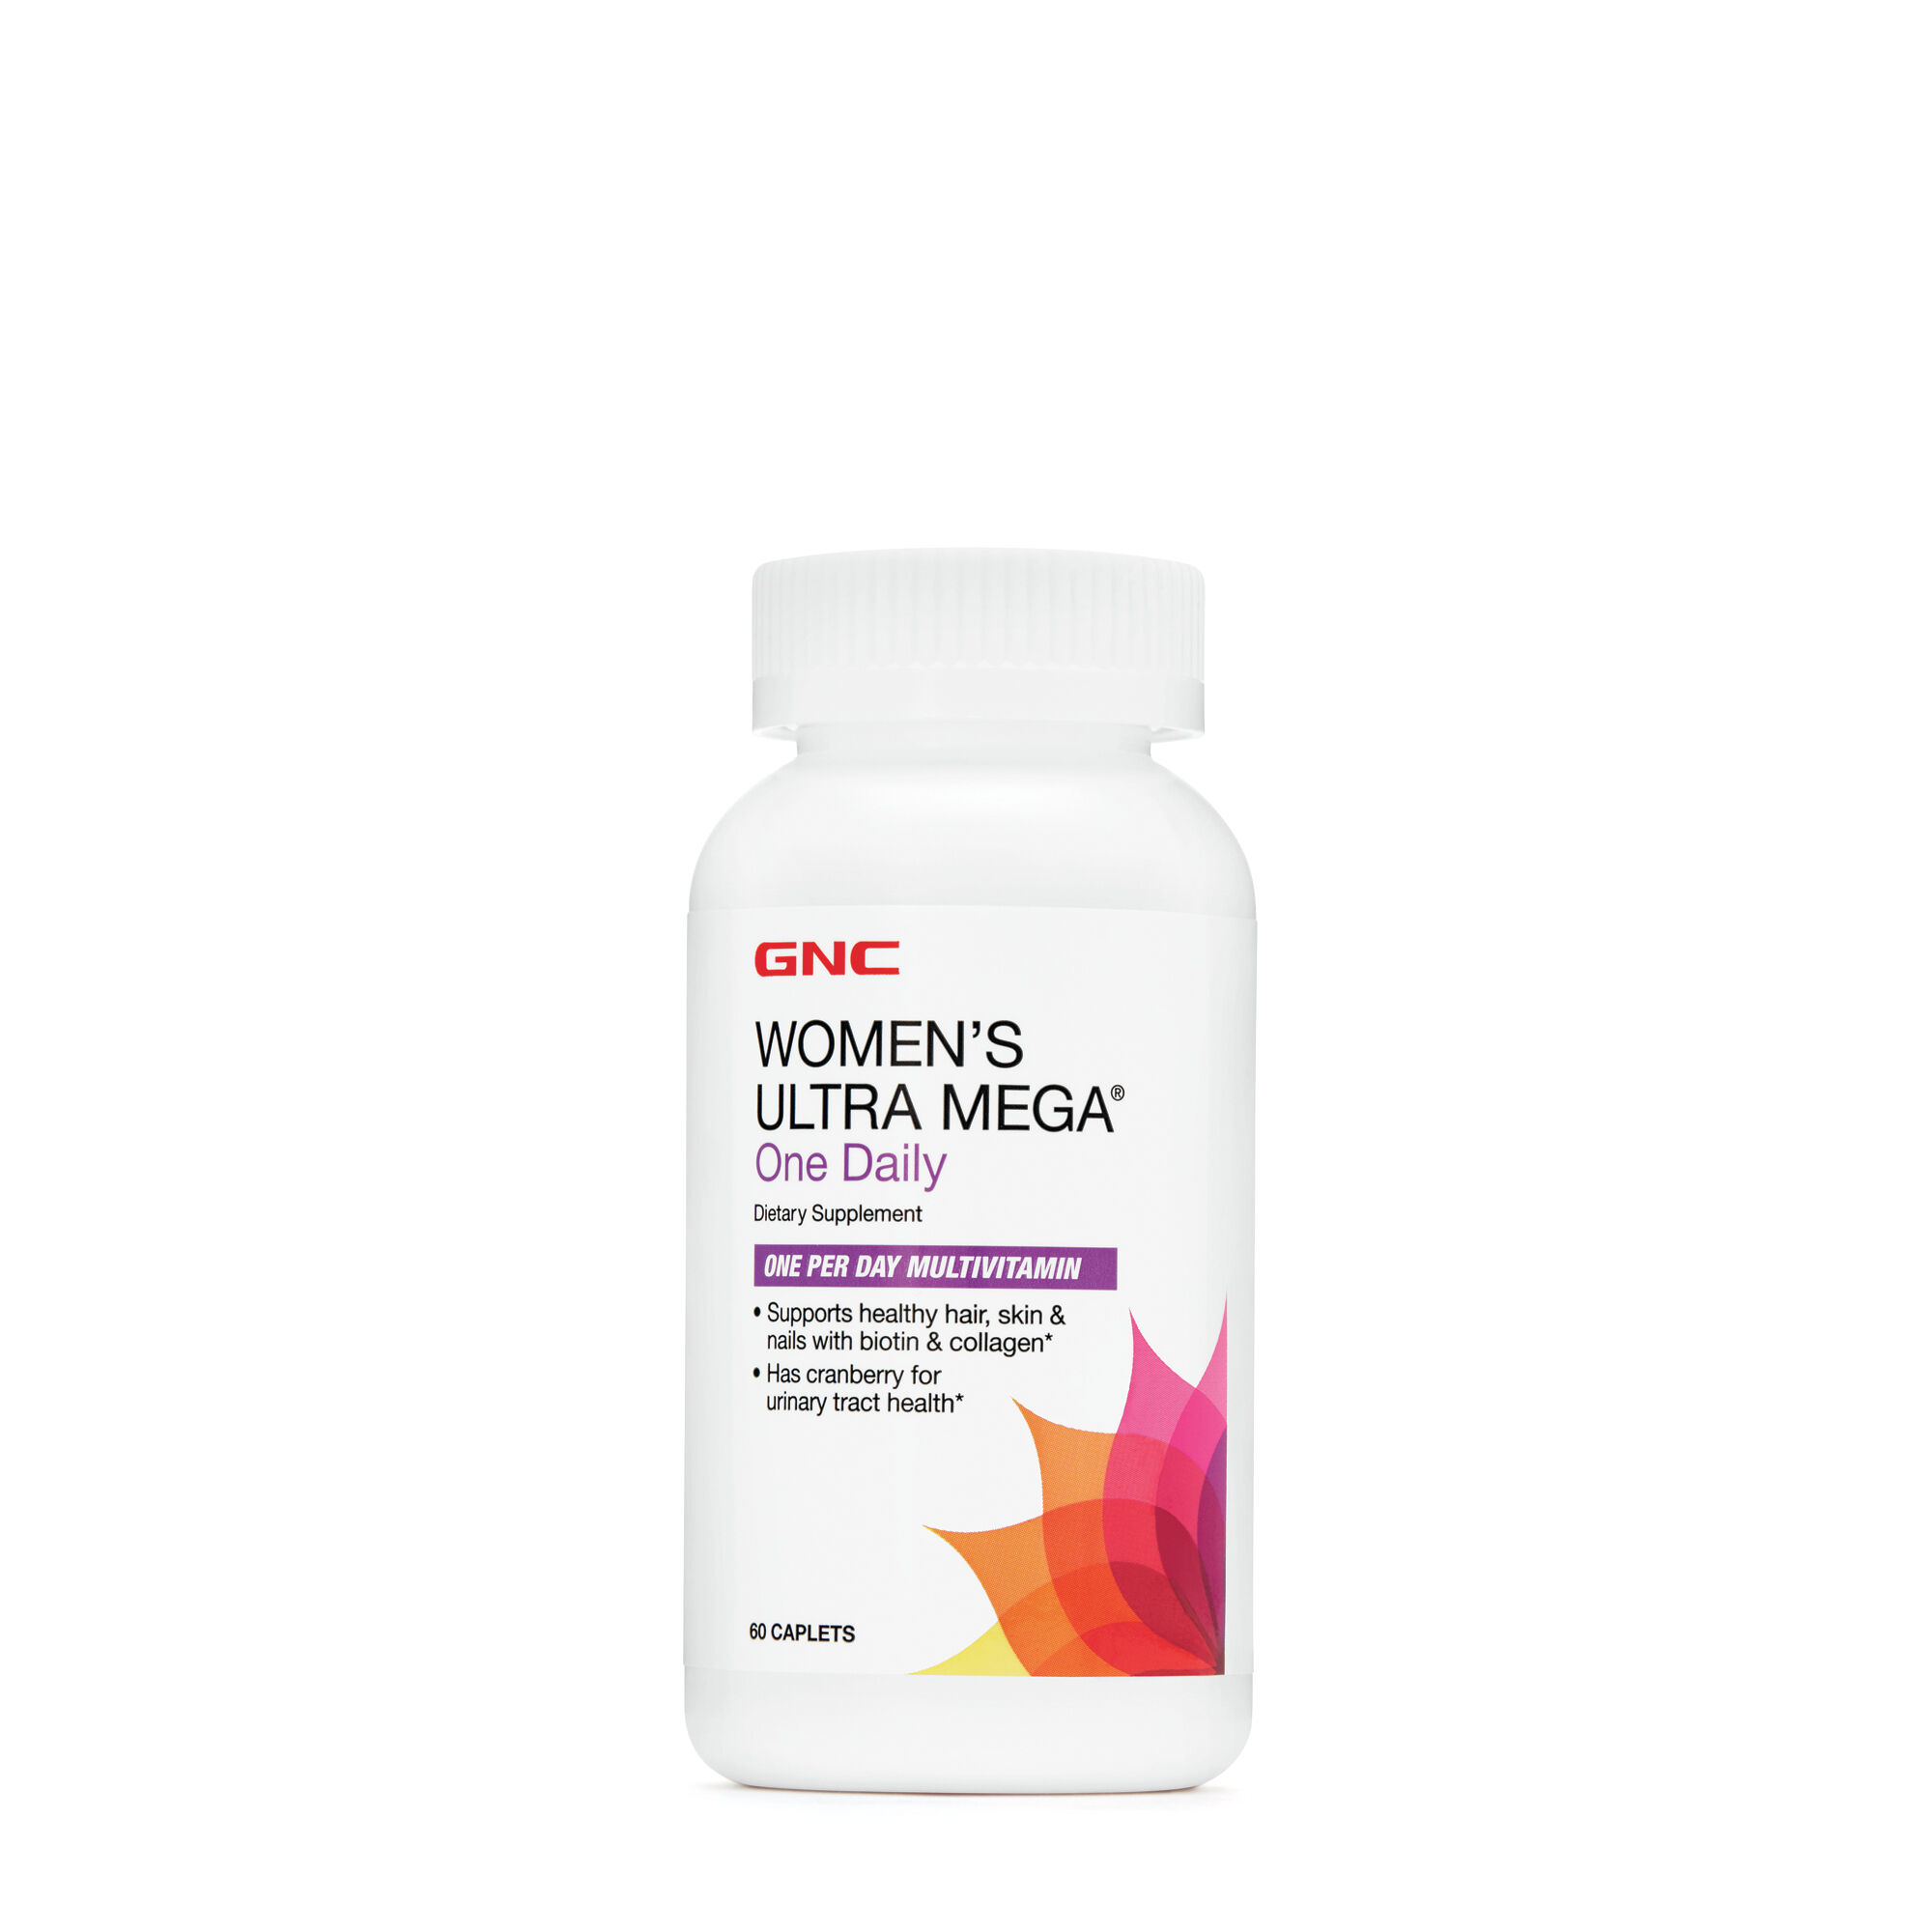 [BEST] GNC 우먼스 울트라 메가 원 데일리 (60정) GNC Women's Ultra Mega One Daily, 60 Caplets